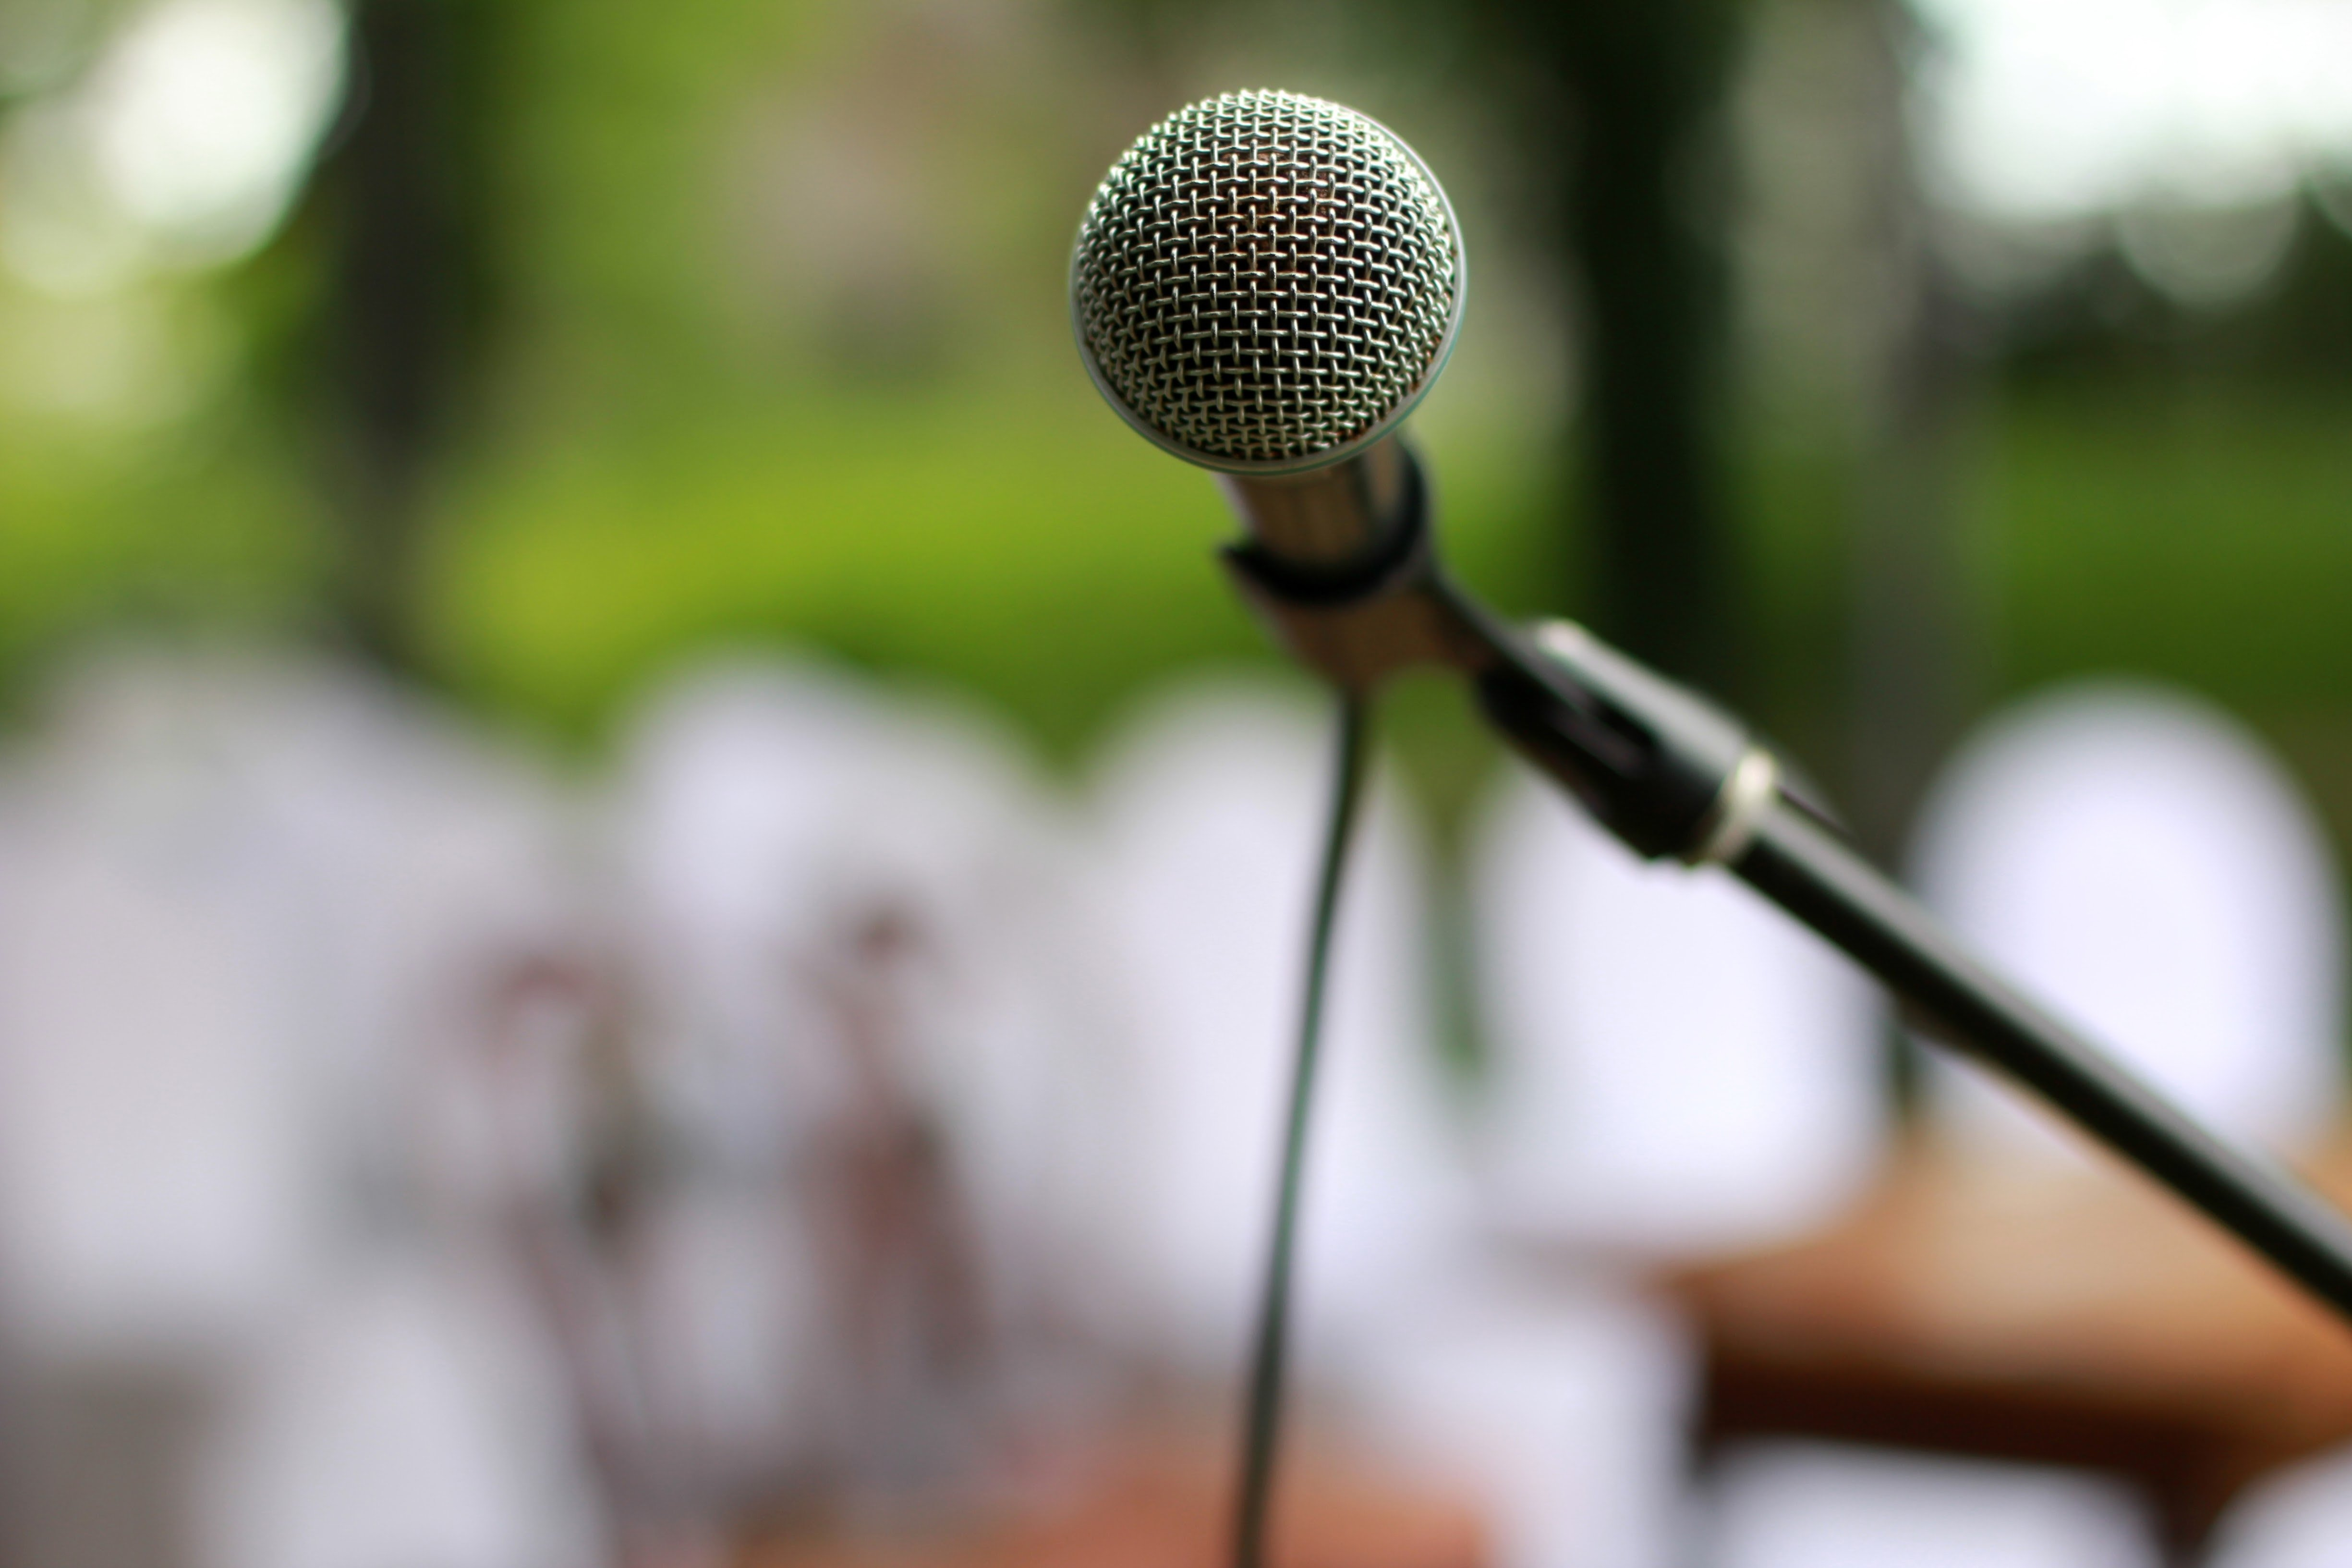 I was anxious as Mary approached the microphone | Photo: Pexels